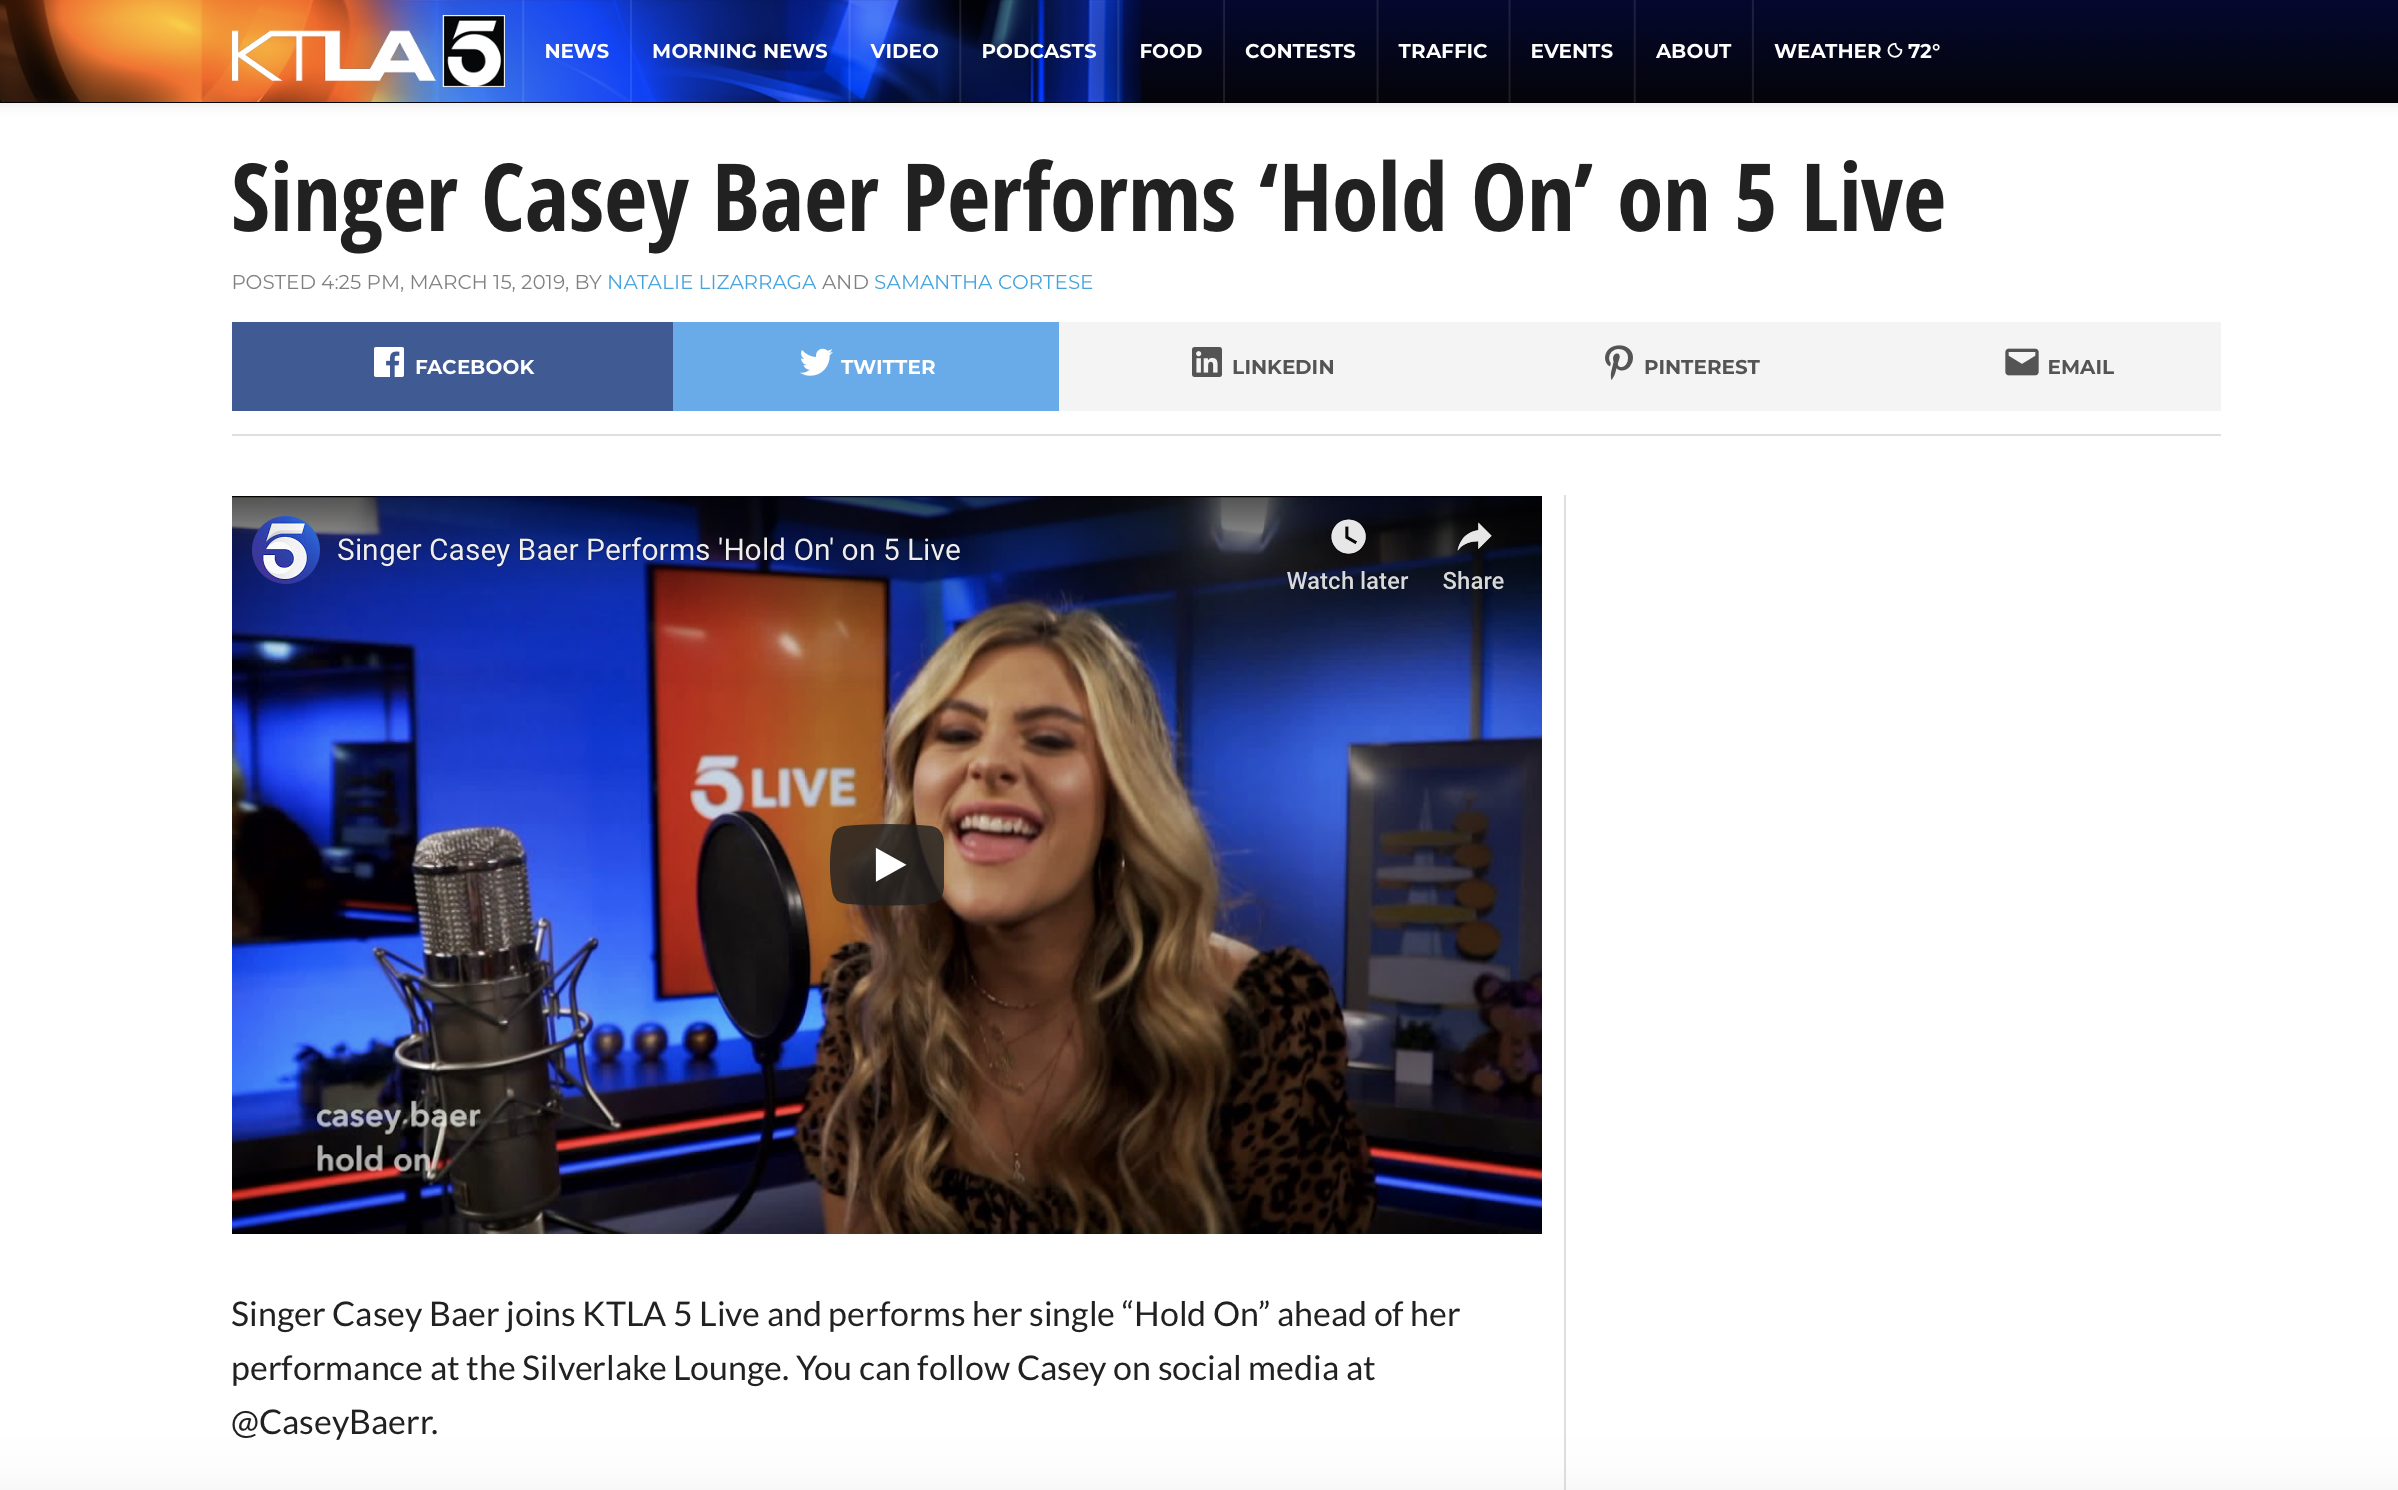 """Singer Casey Baer Performs 'Hold On' on 5 Live - Singer Casey Baer joins KTLA 5 Live and performs her single """"Hold On"""" ahead of her performance at the Silverlake Lounge."""